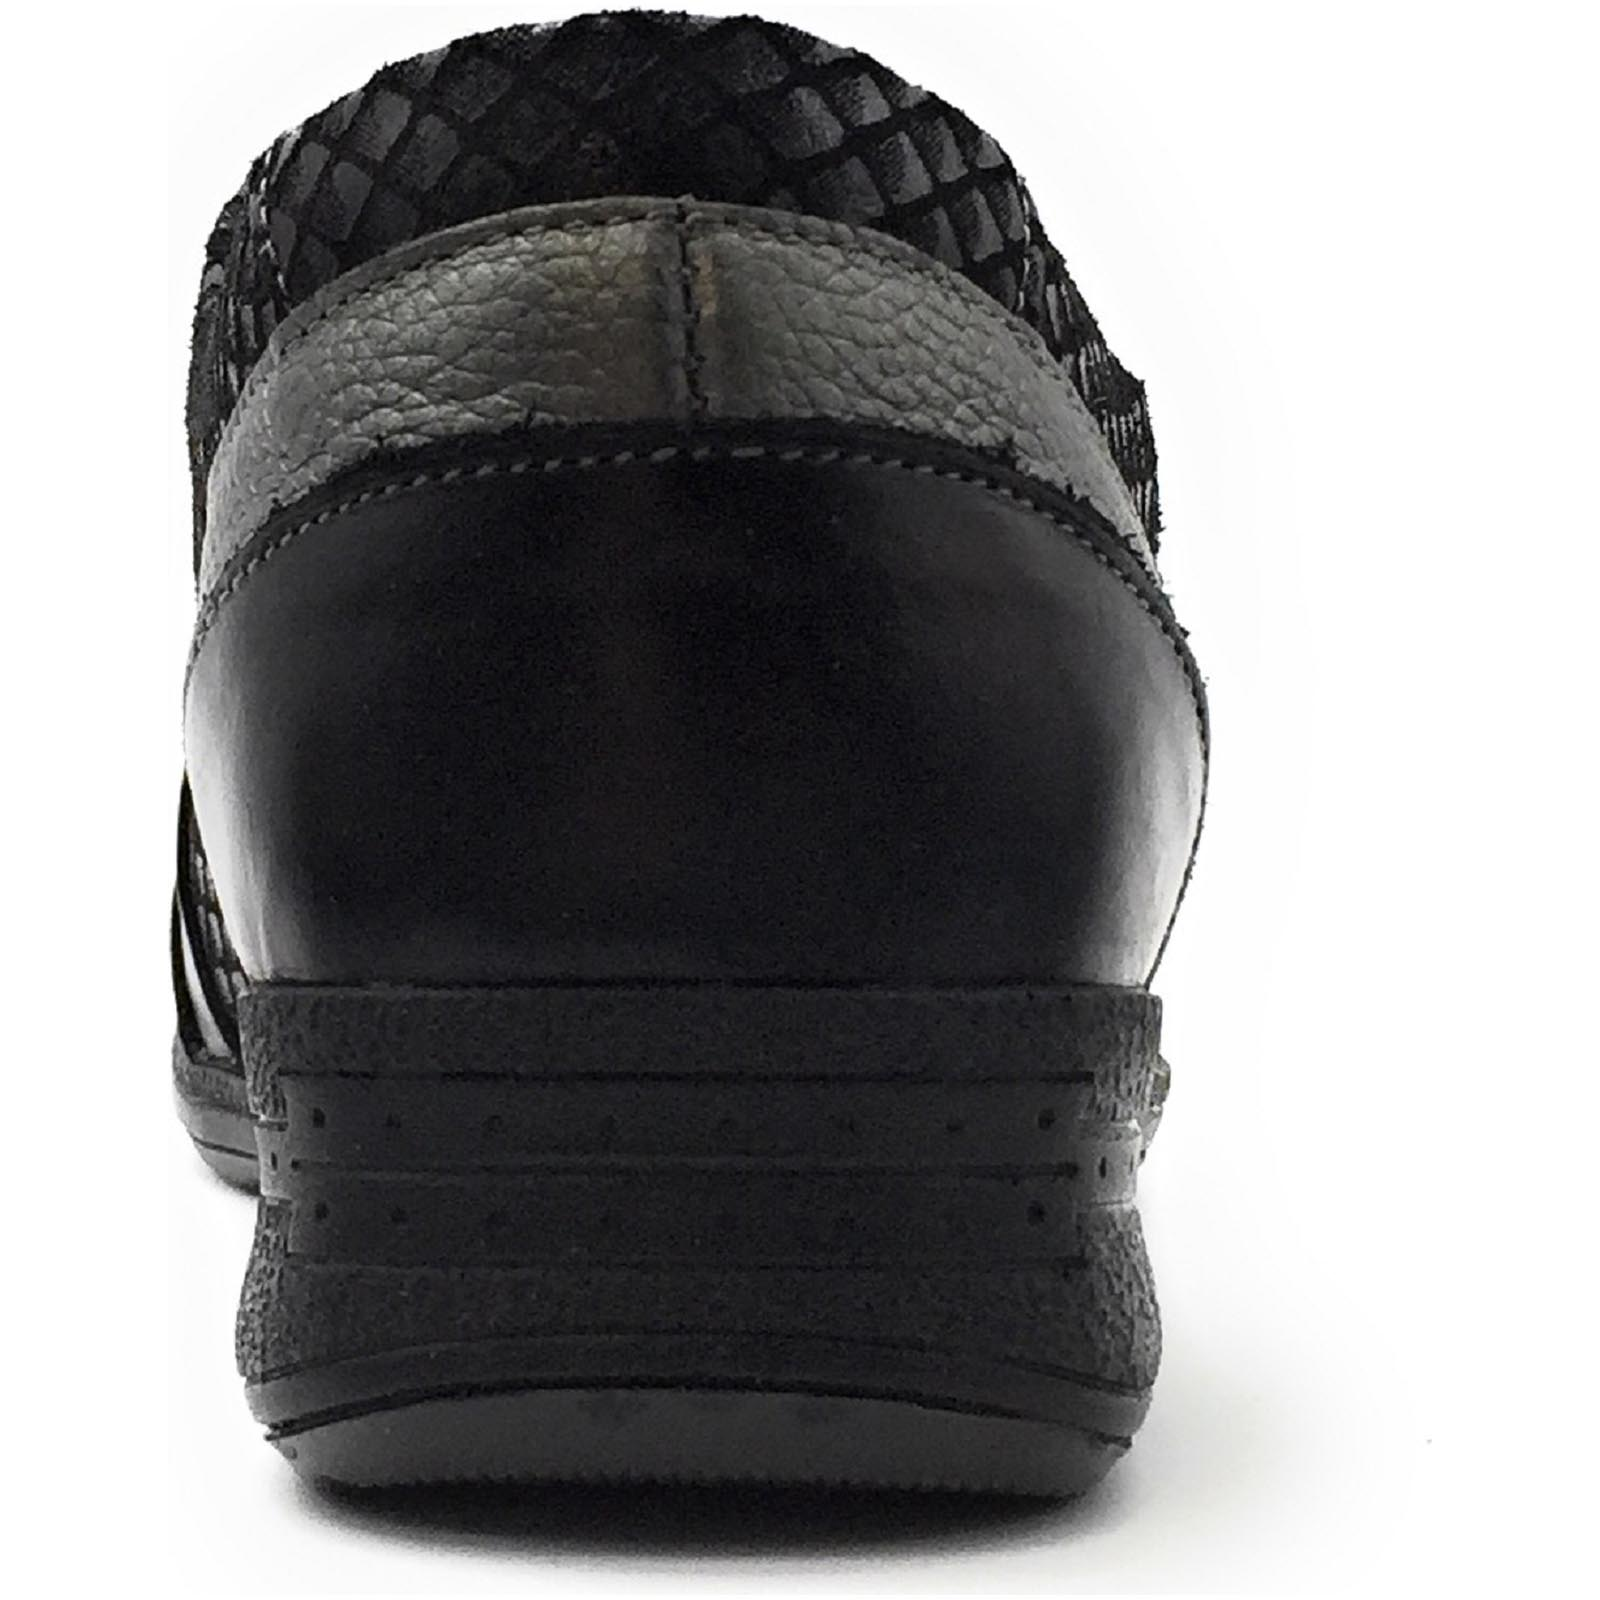 Suave baskets mode 7518 noir8054201_3